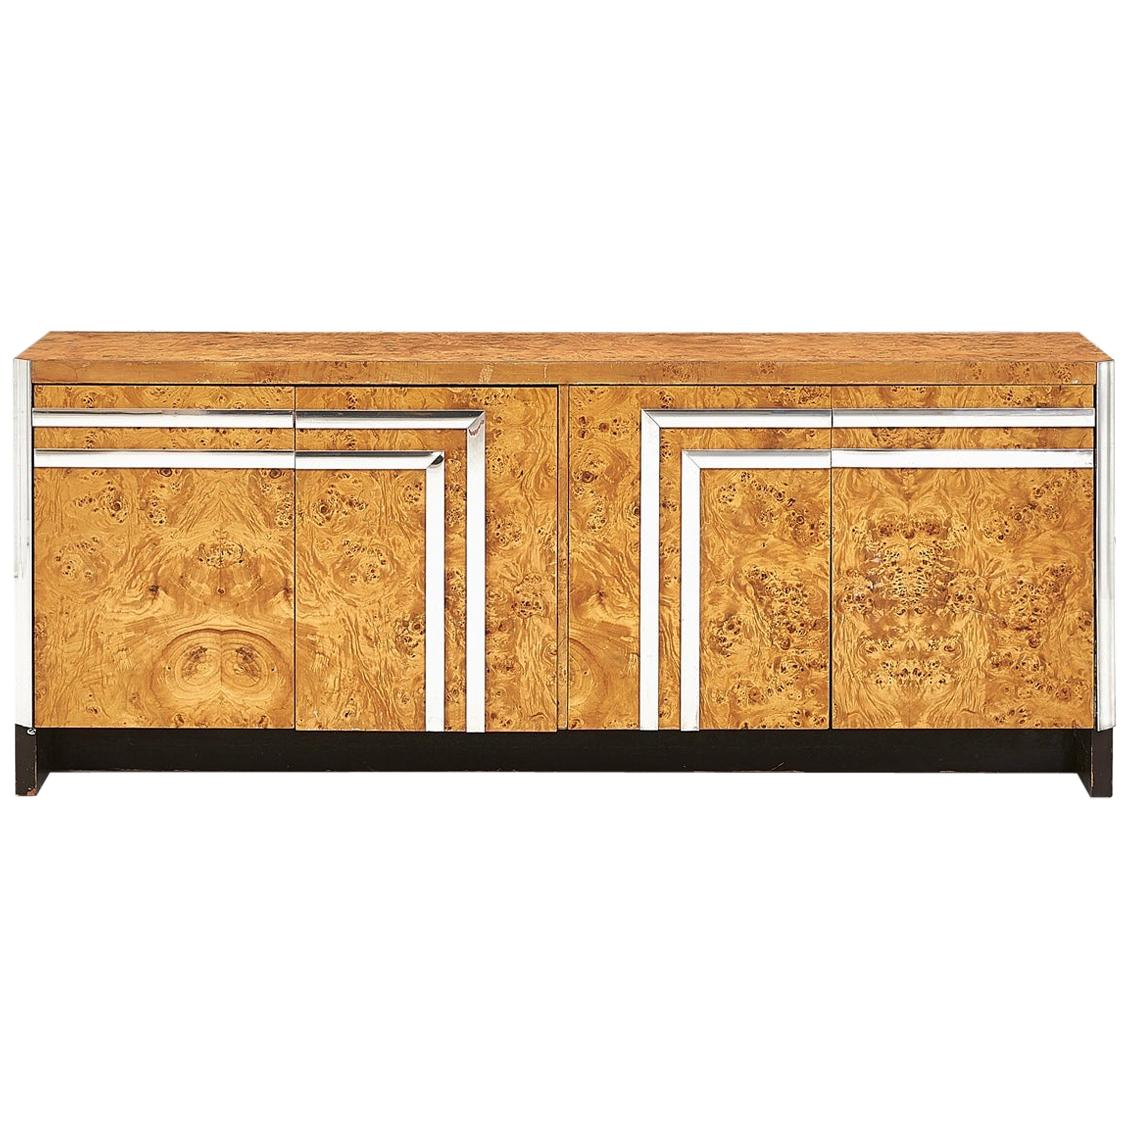 Pace Burl Wood and Chrome Dresser, Italy, 1970